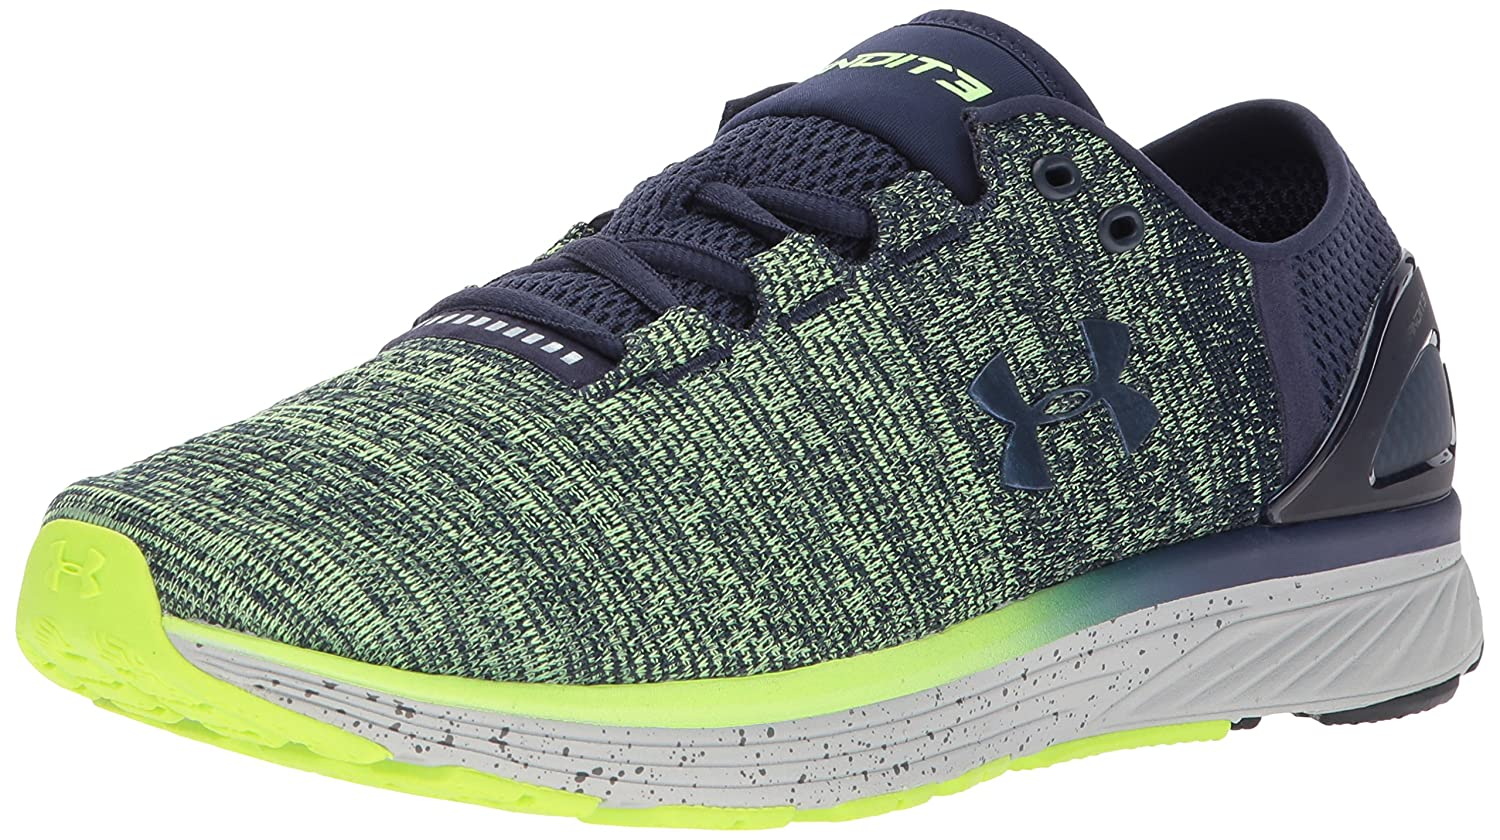 Under Armour Women's Charged Bandit 3 Running Shoe B01NCANU02 11 M US|Quirky Lime (752)/Midnight Navy